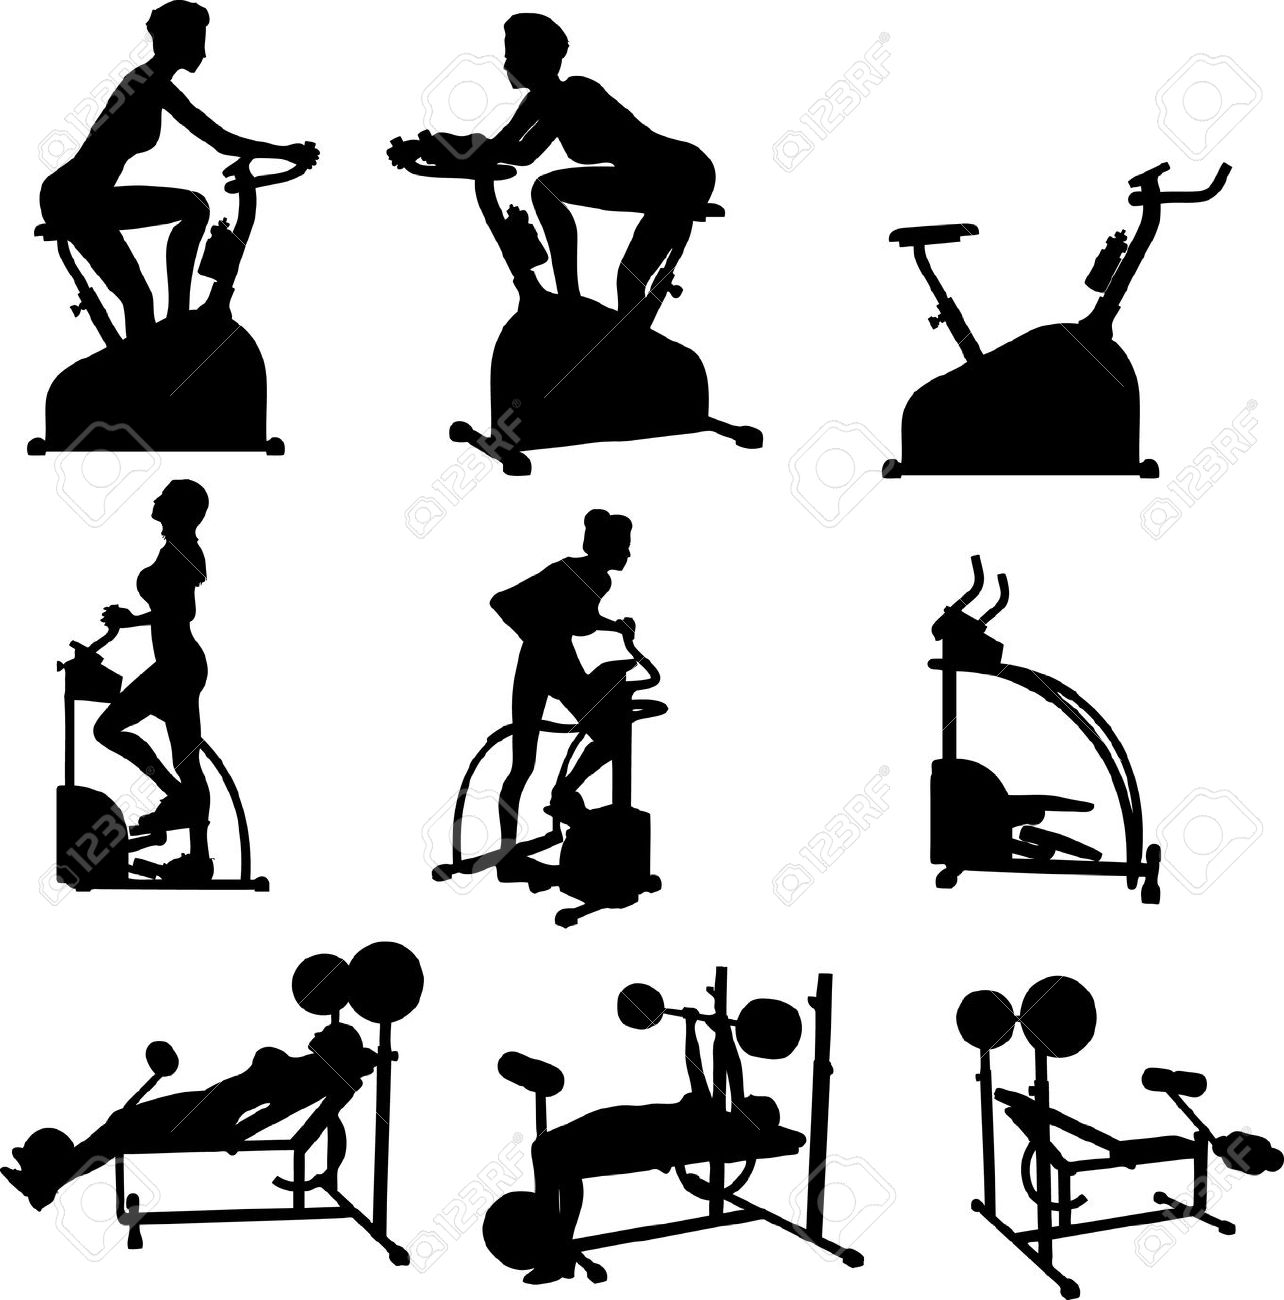 1284x1300 List Of Synonyms And Antonyms Of The Word Gym Silhouette